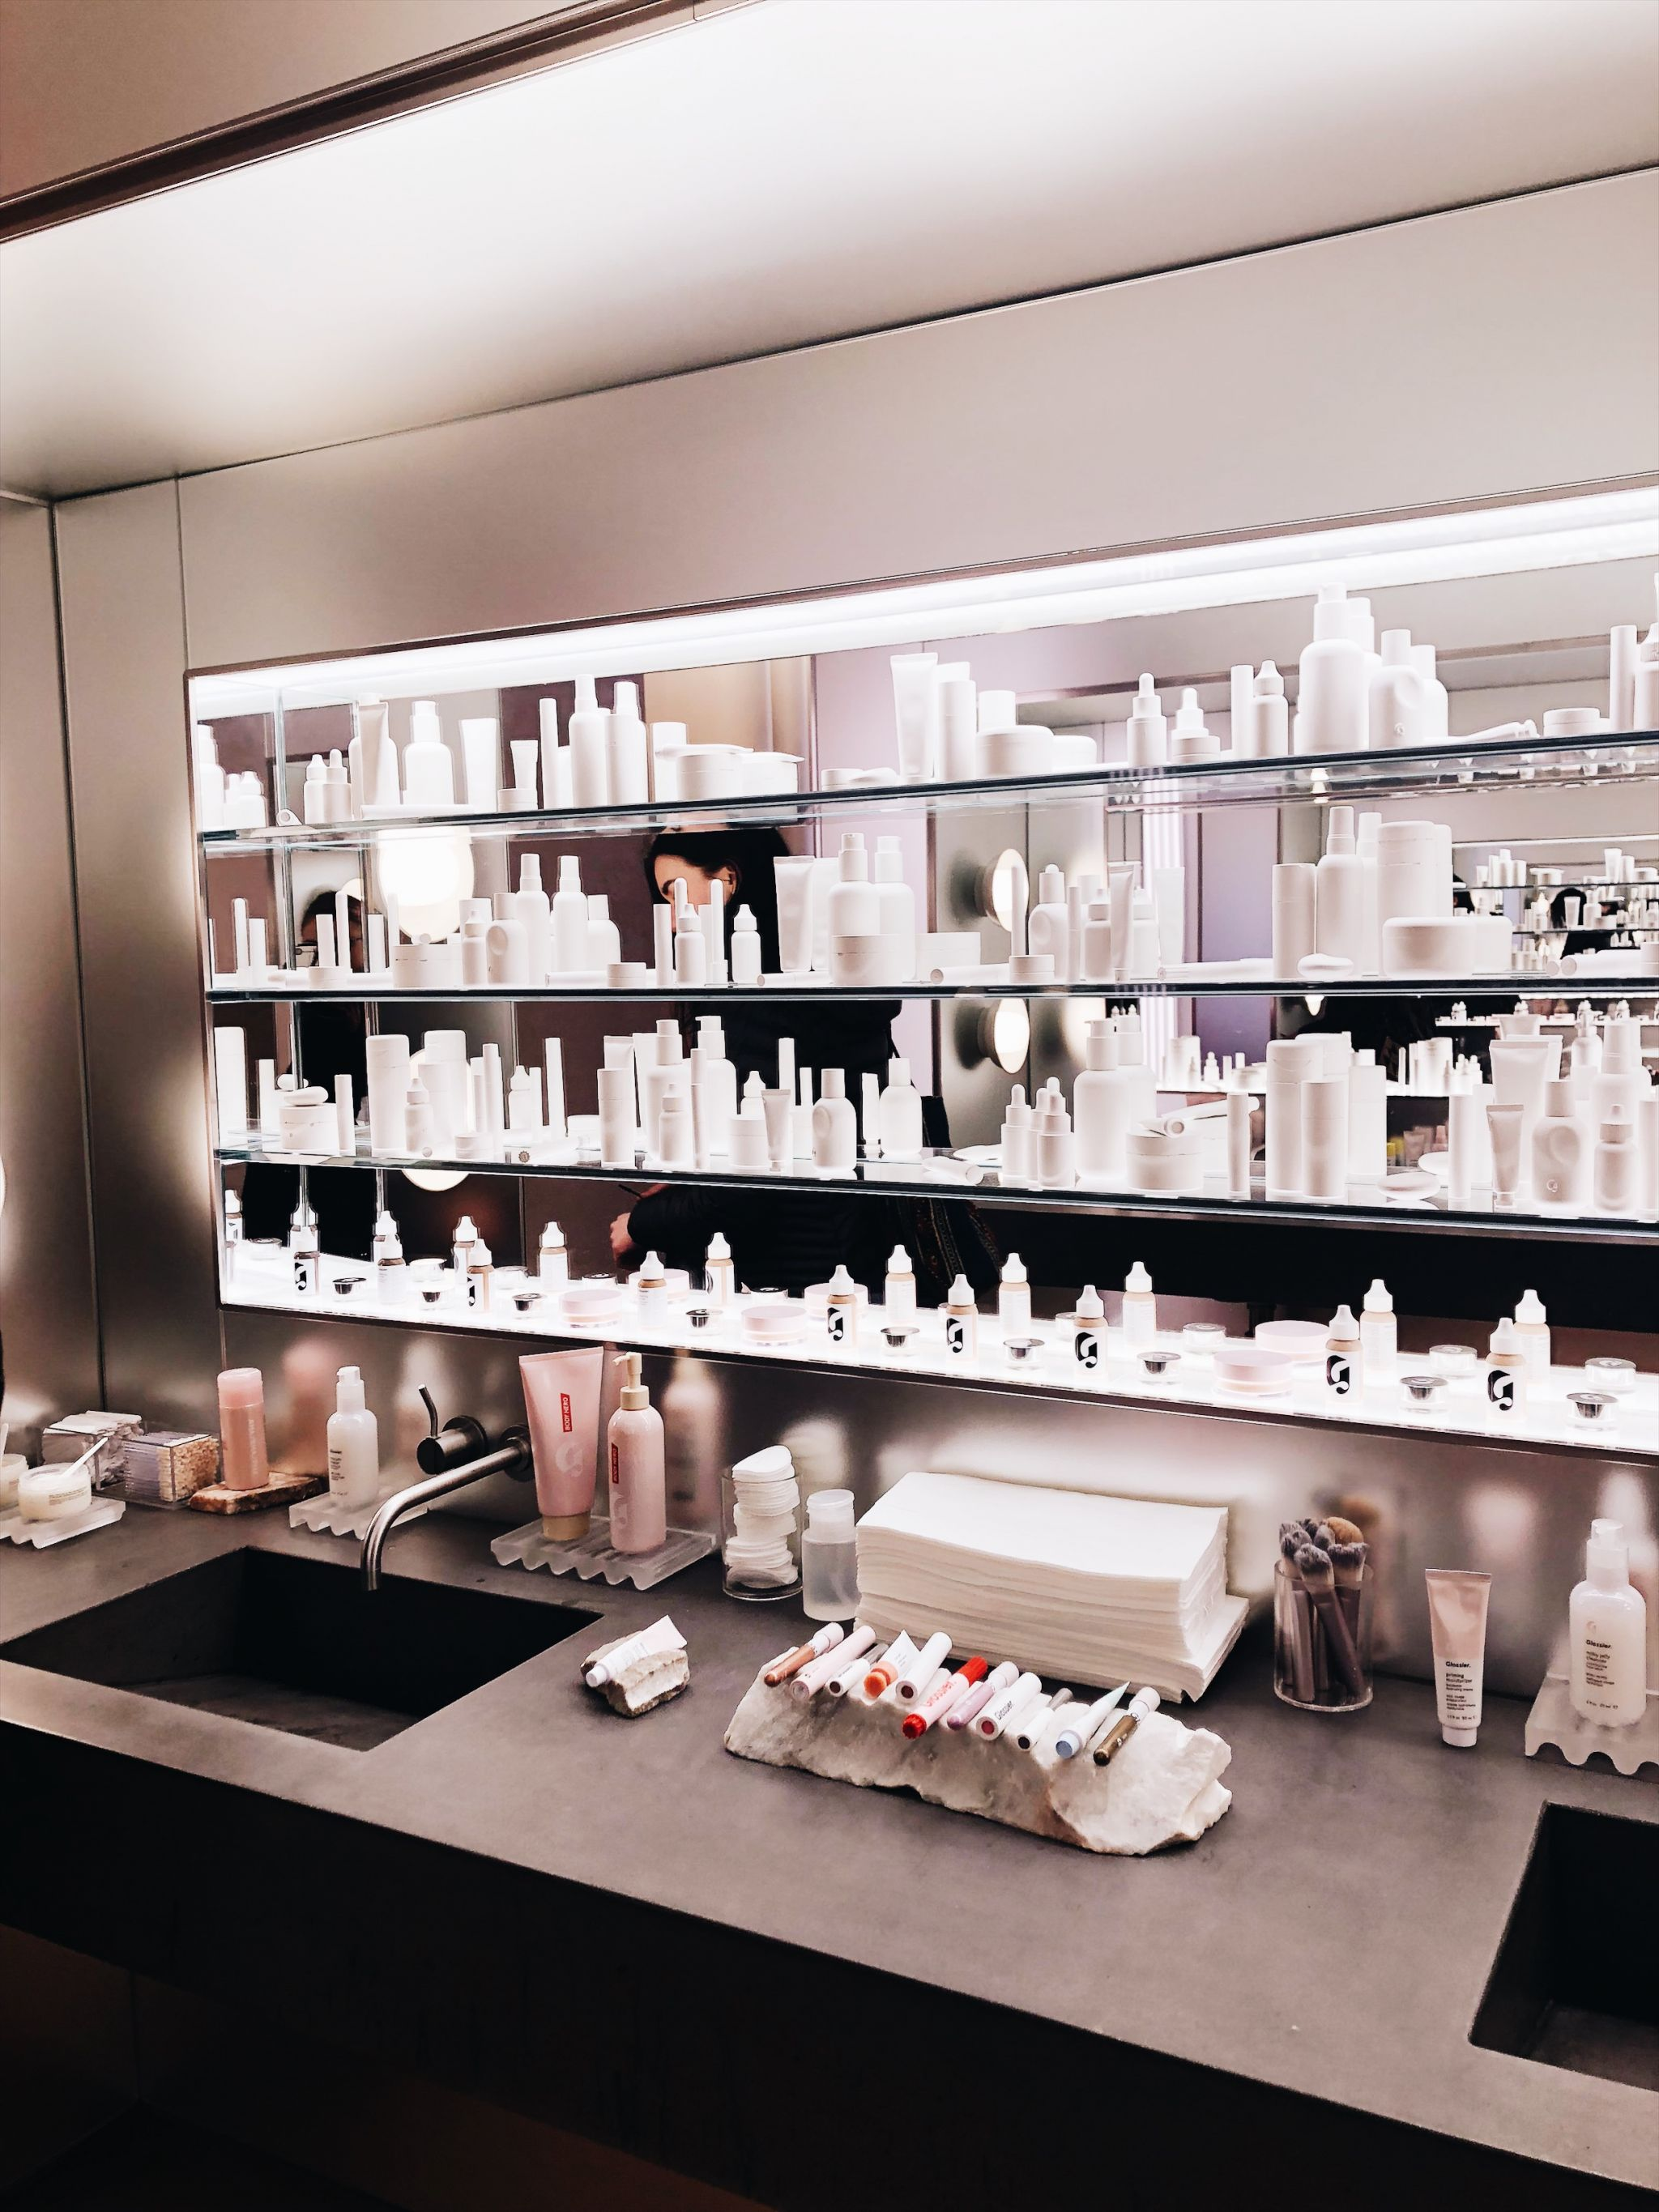 Most Instagrammable Spots in SoHo - glossier flagship store